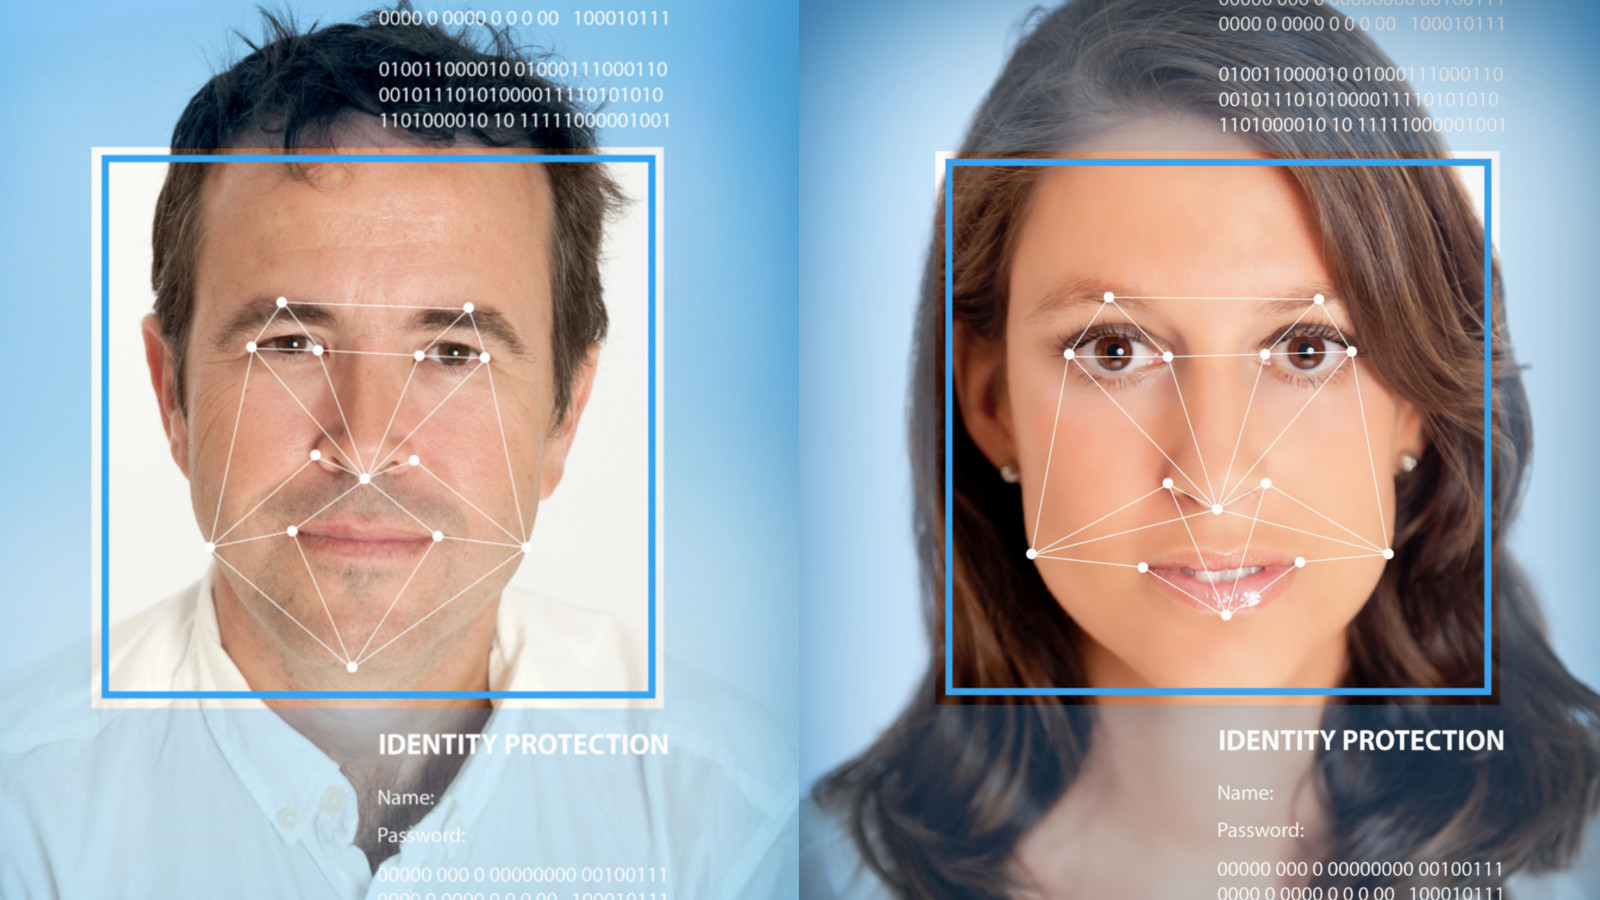 Do you think it's creepy or it's about time this technology is being used?